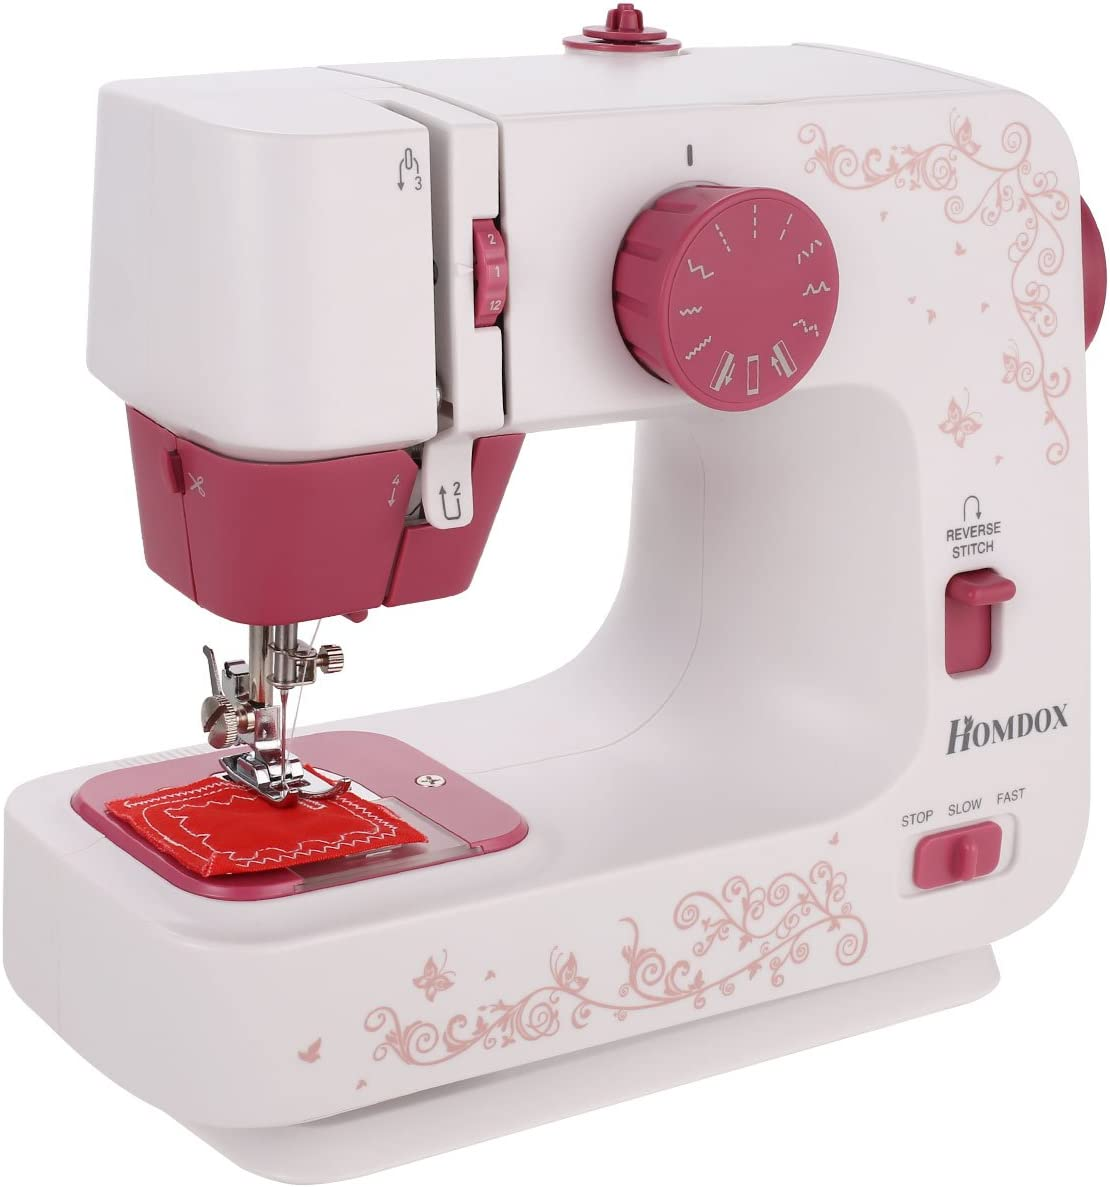 Top 10 Best Sewing Machine for Kids (2020 Reviews & Buying Guide) 5